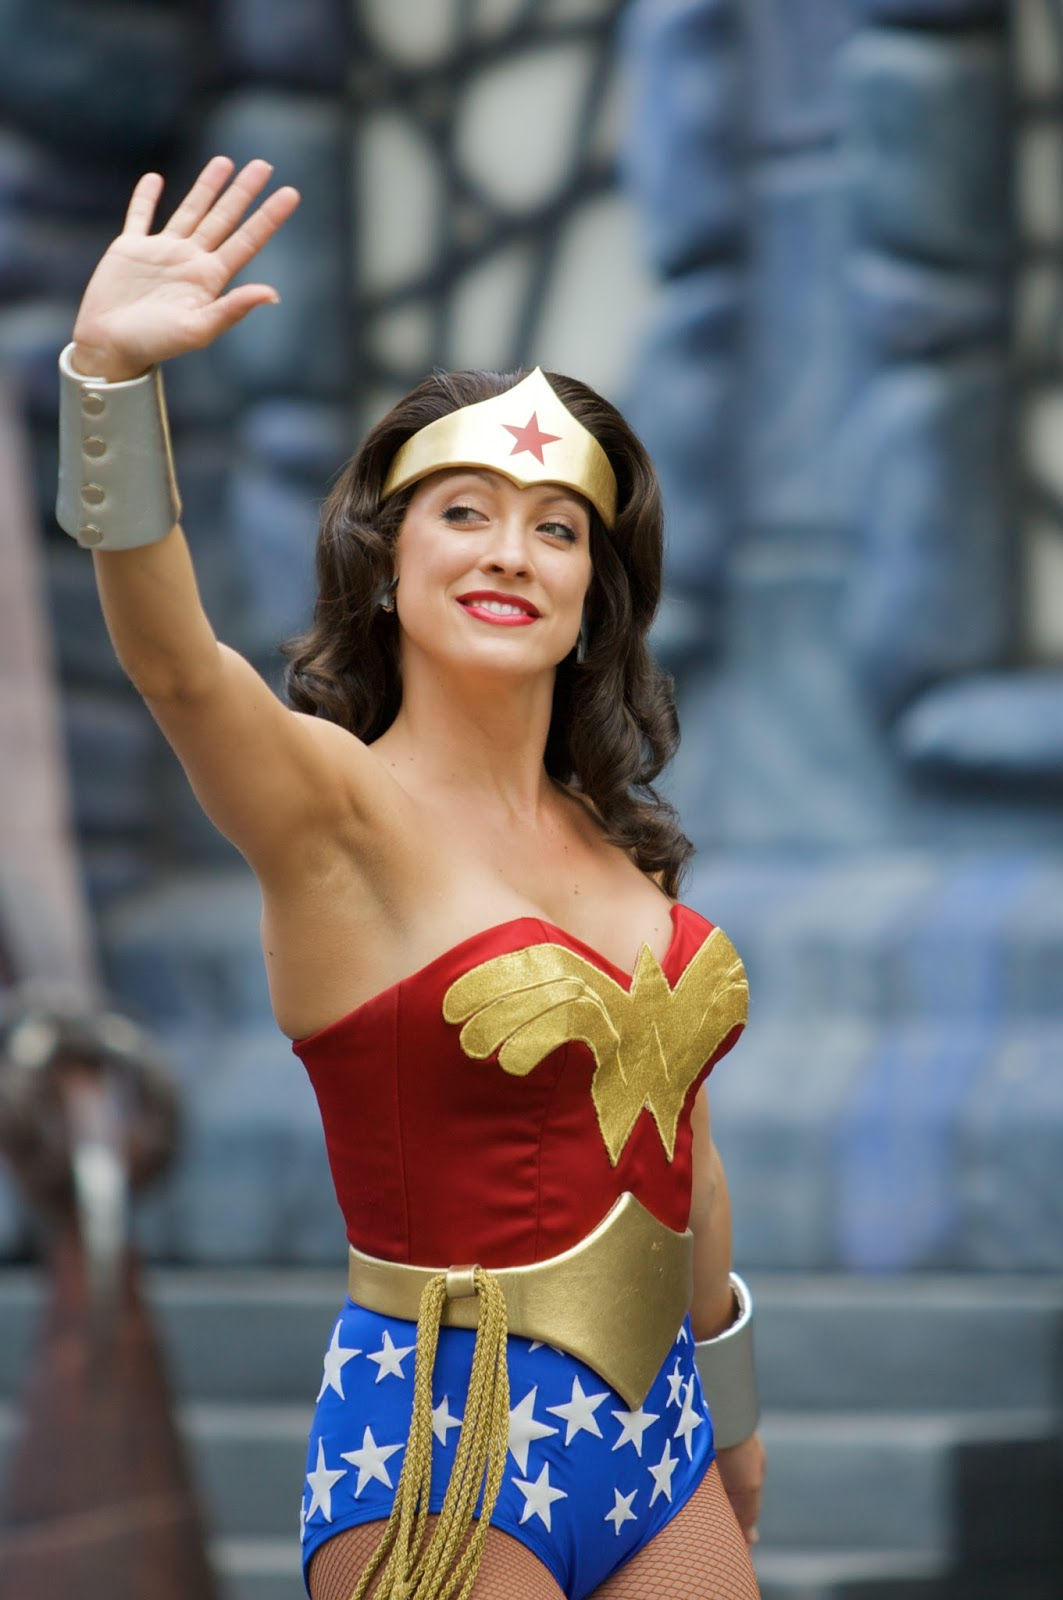 Wonder Woman Cosplay (Comic Heroines!)